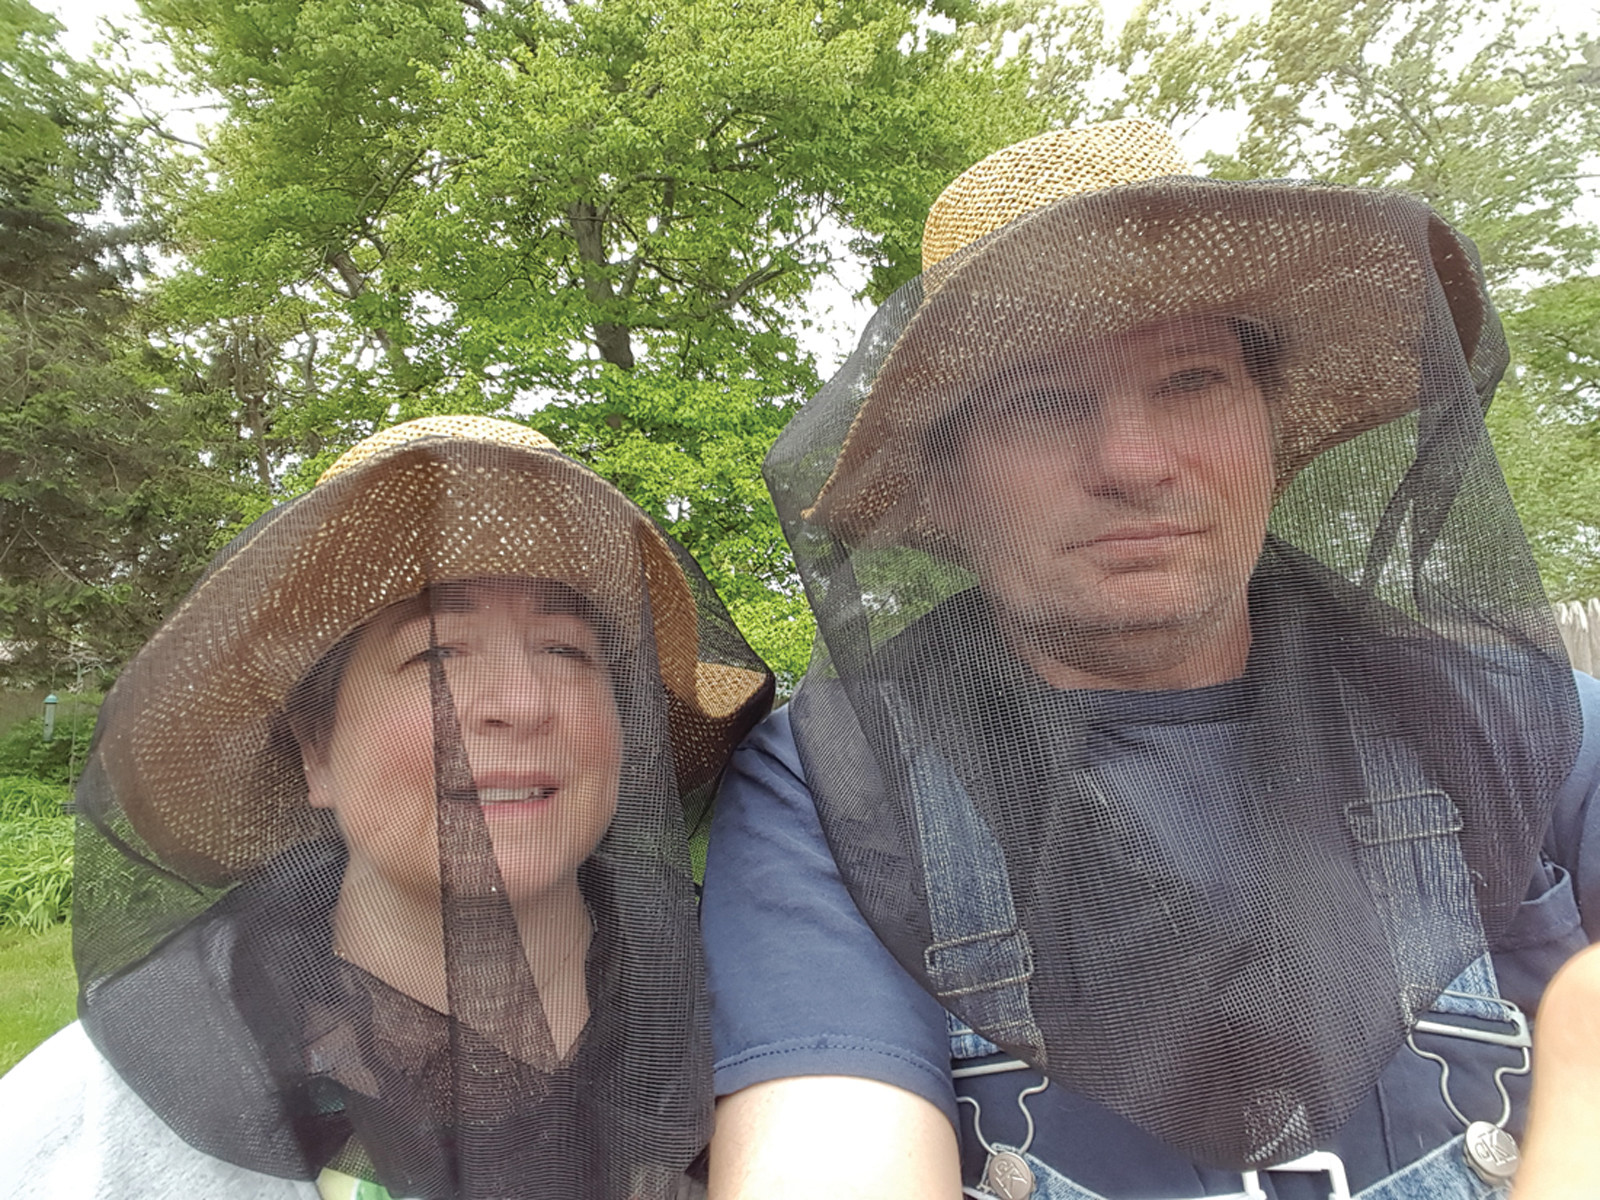 PLAYING IT SAFE: Jim and Sandra Suttles of Warwick started beekeeping about a year ago. They plan to expand with a second hive this year.